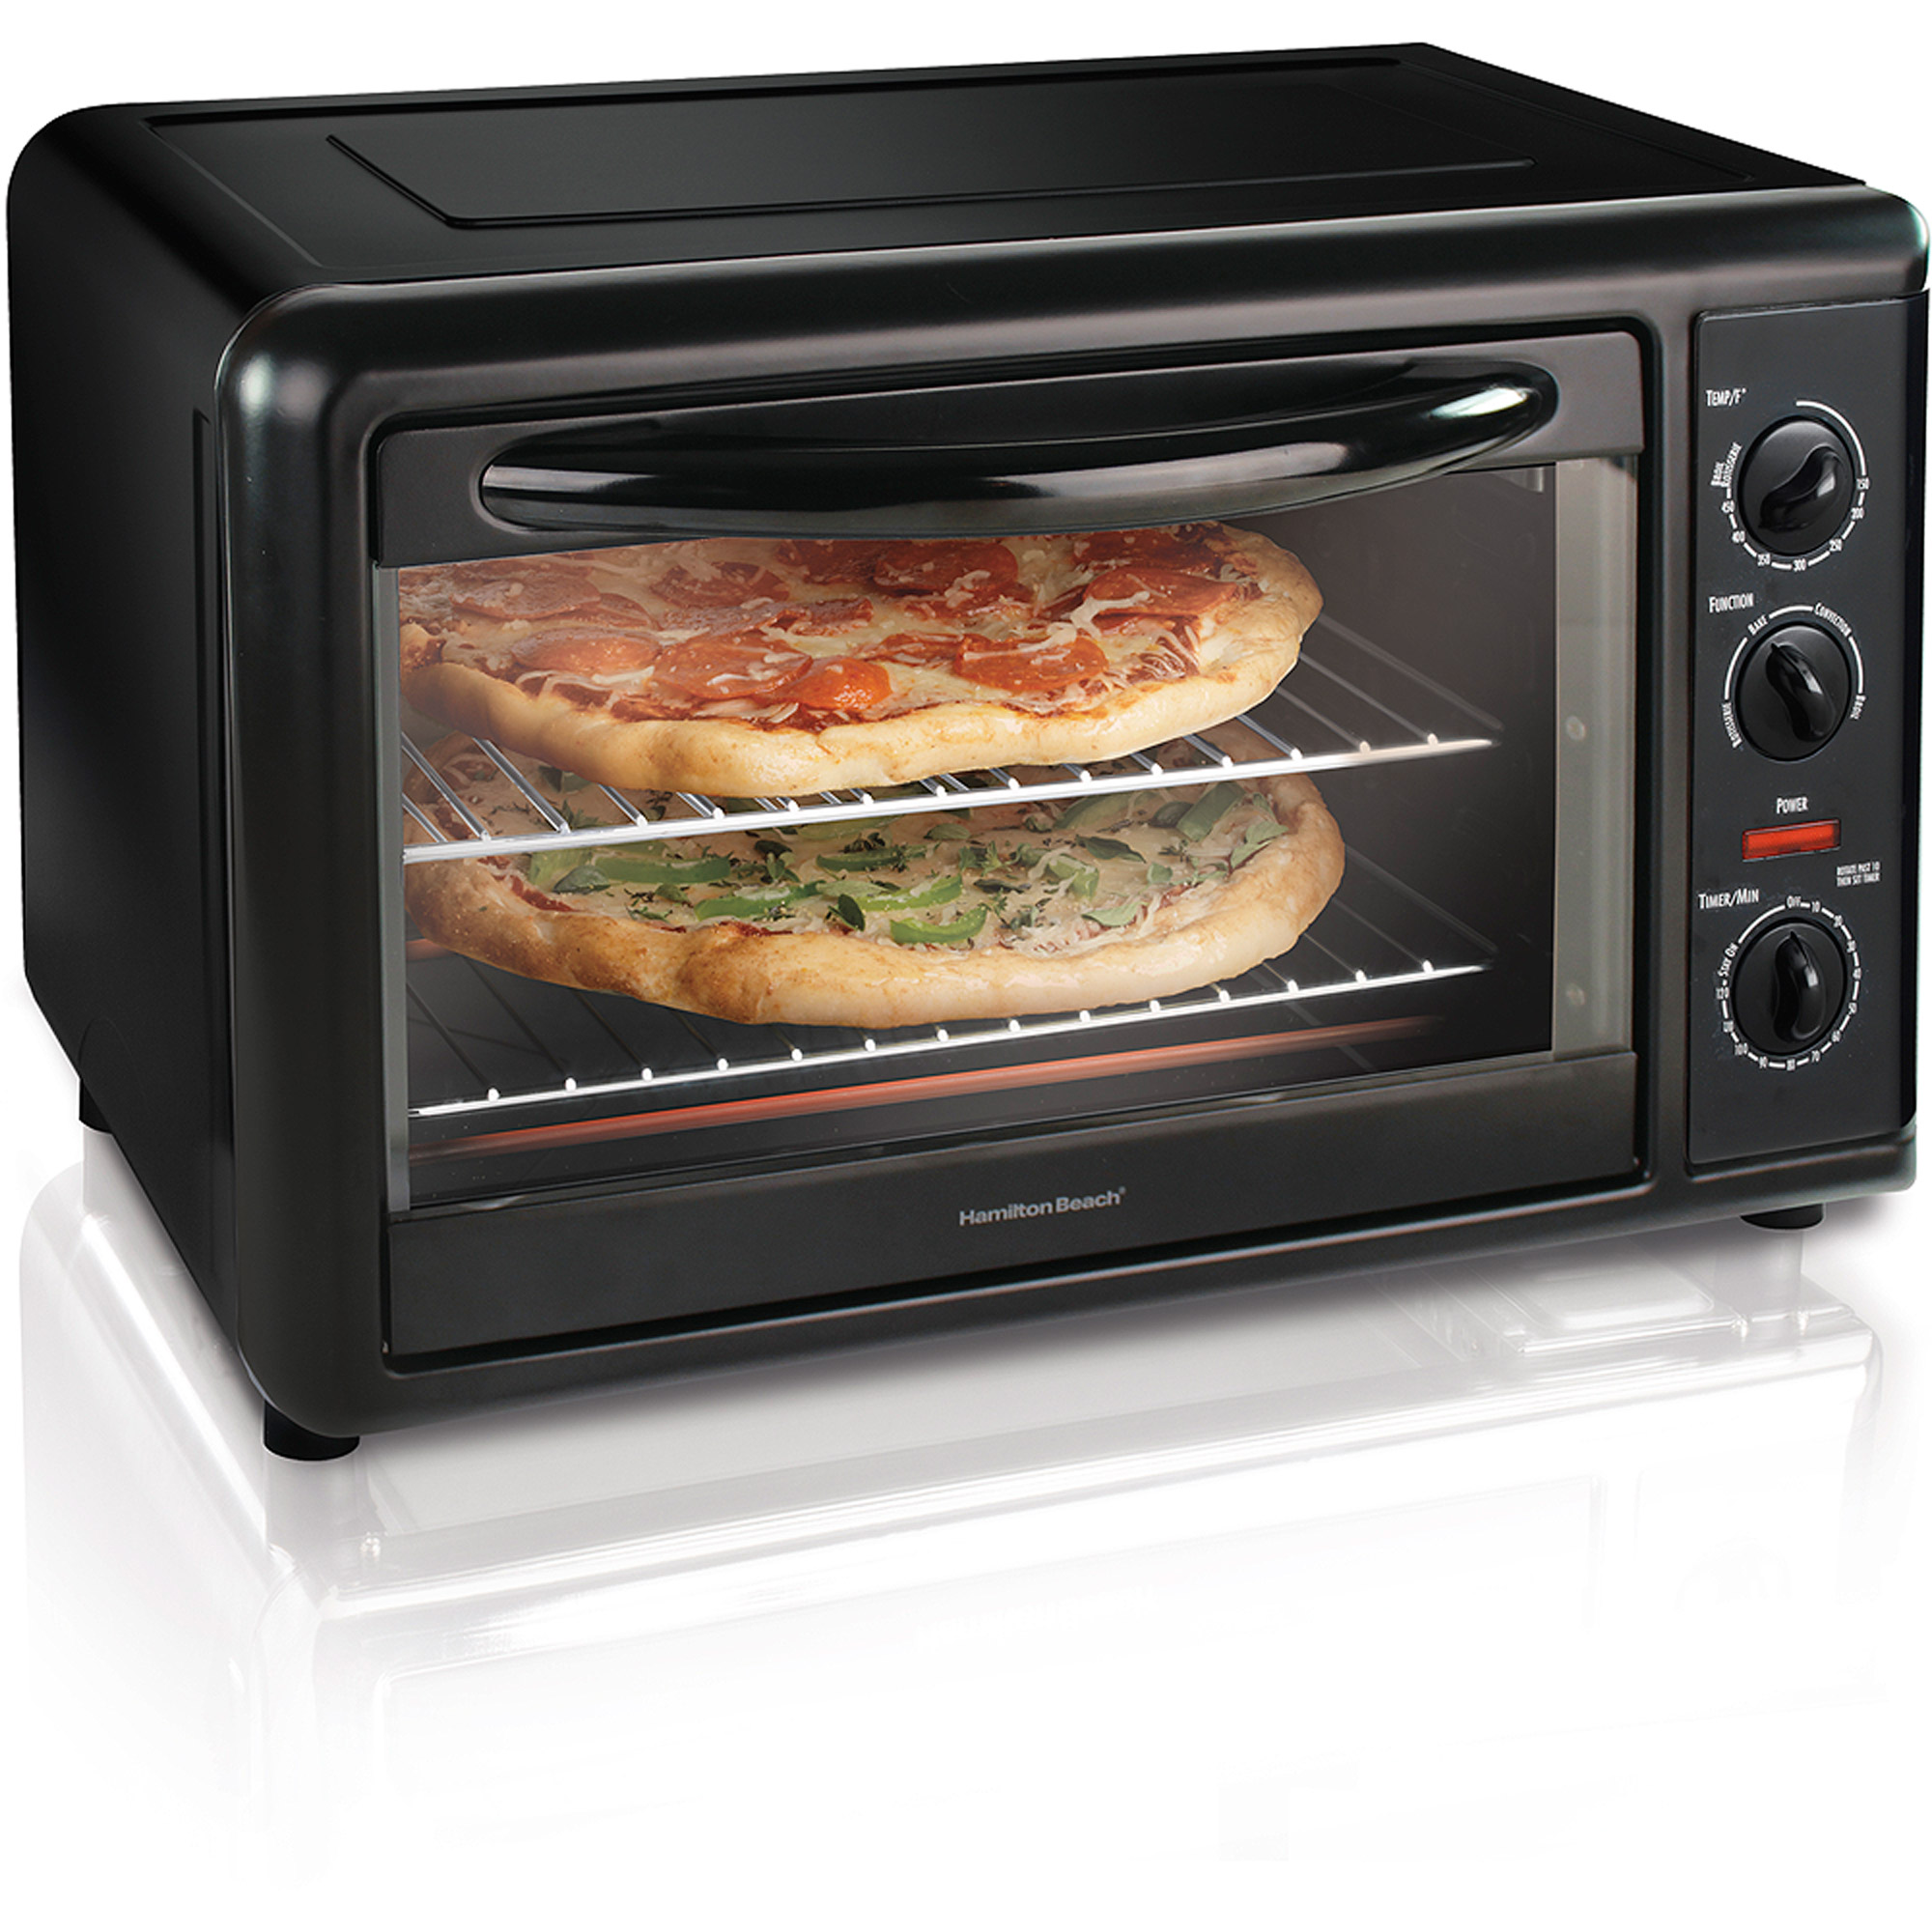 Hamilton Beach Countertop Oven with Convection Model 31121A